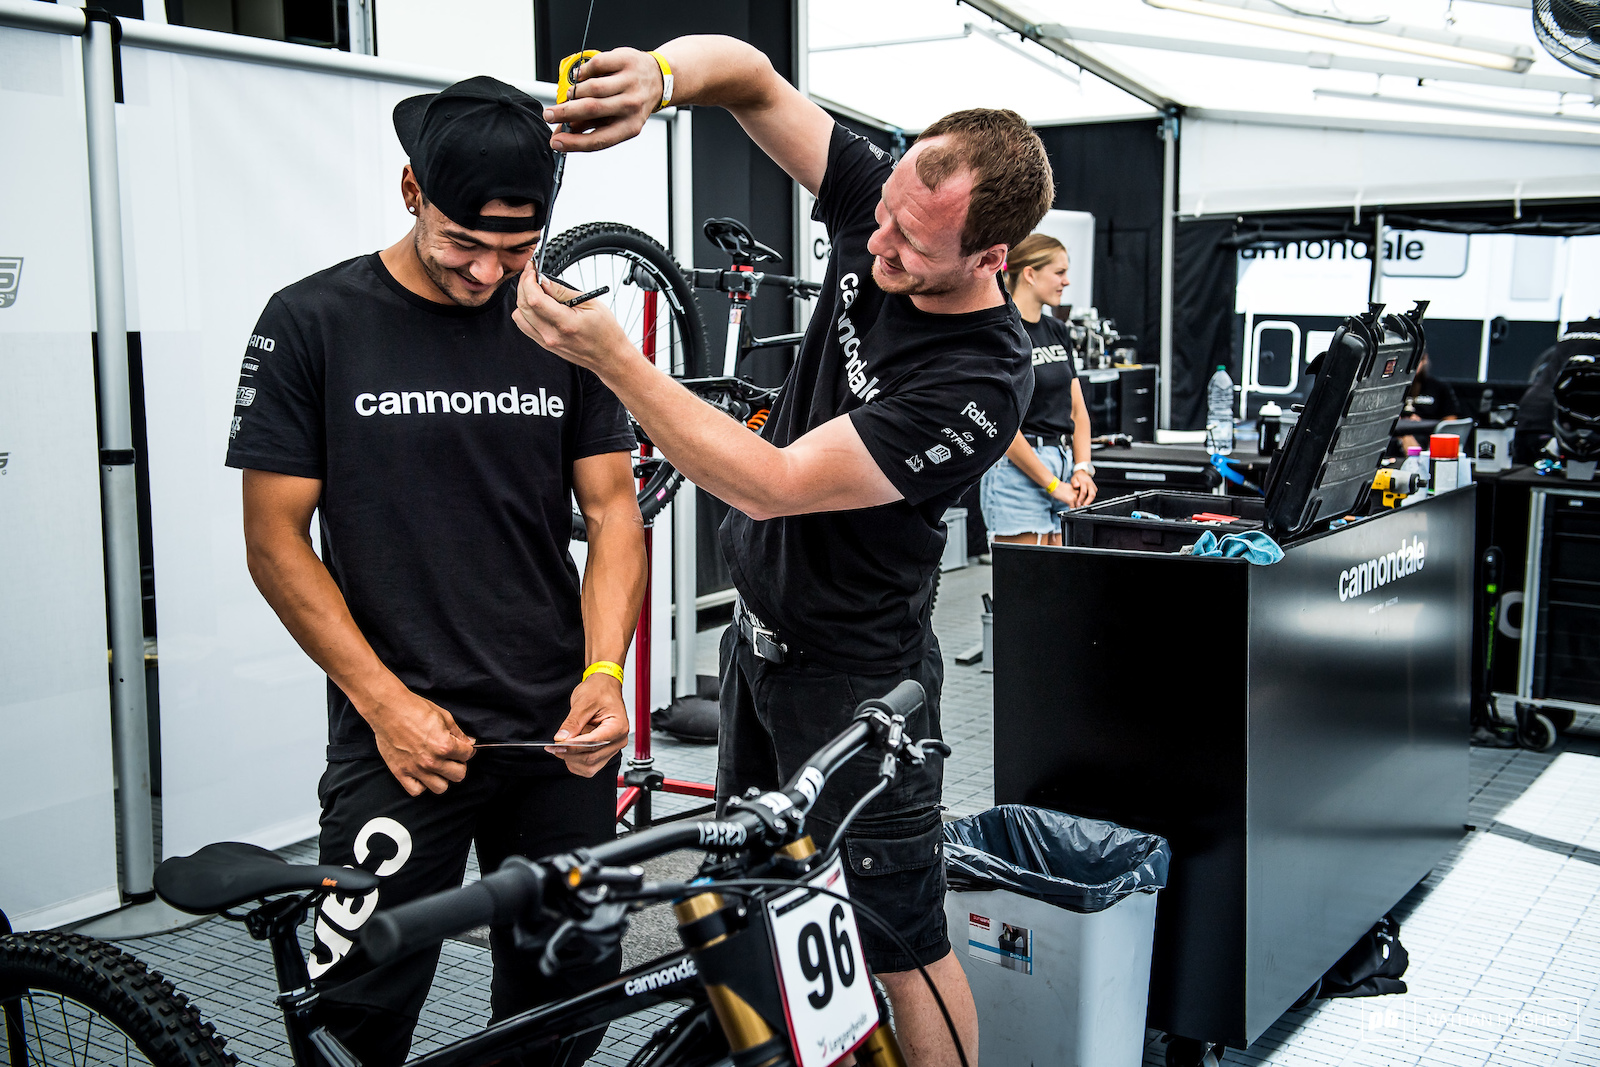 Kenta Gallagher is another of the tests inside the overall test that is the Cannondale DH program. The kind of test inception depicted is presumed to be a measurement test of some kind.